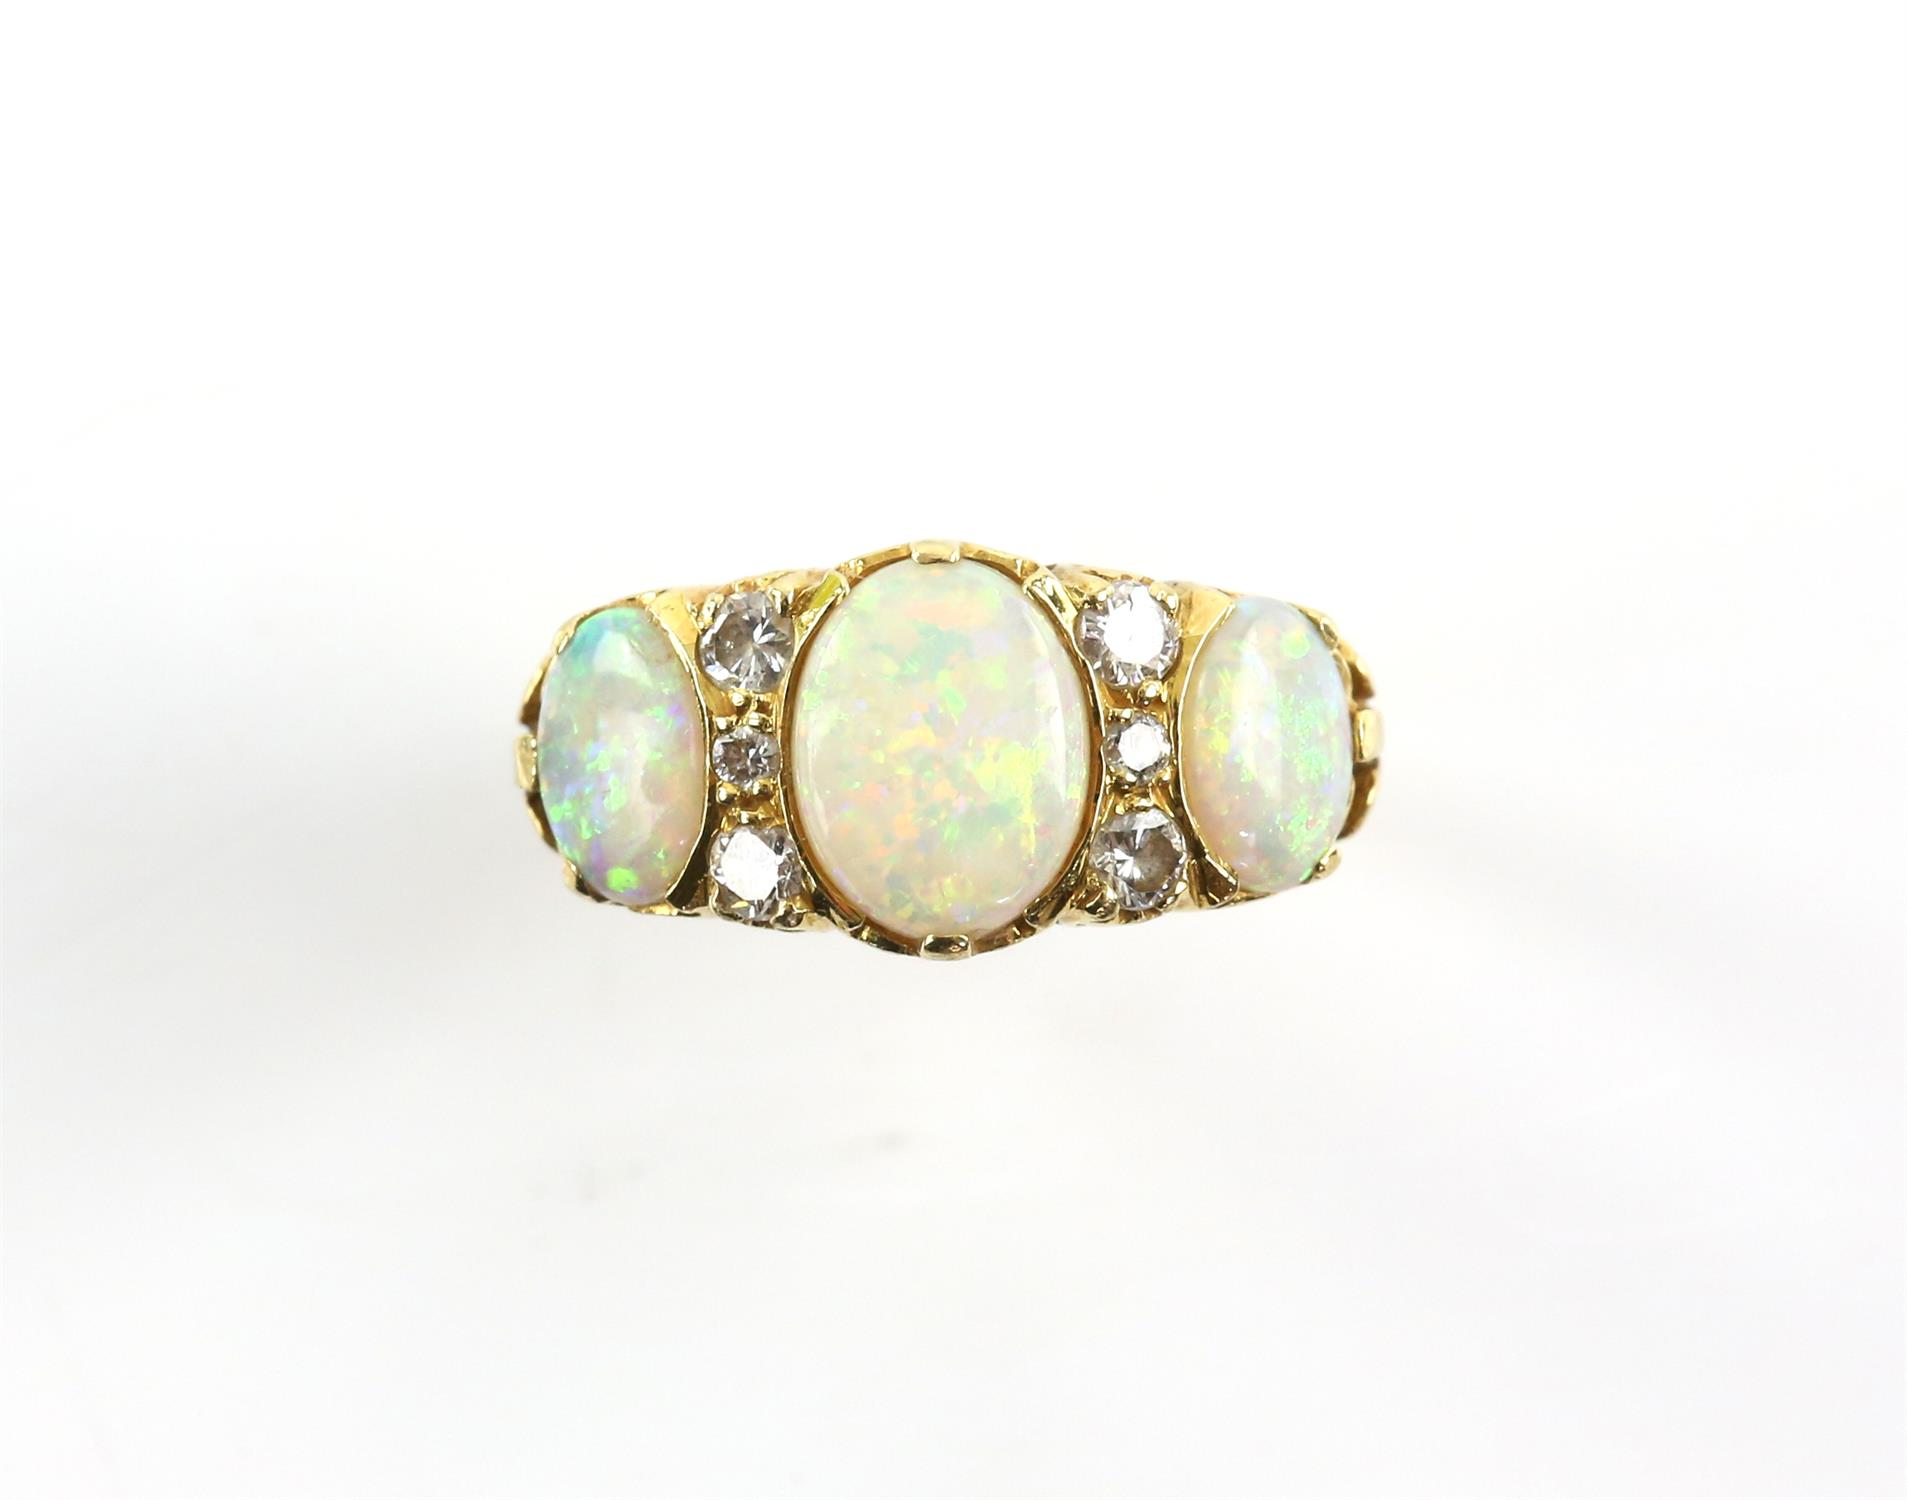 Vintage opal and diamond ring, the centre opal is a synthetic, the side stones are natural,